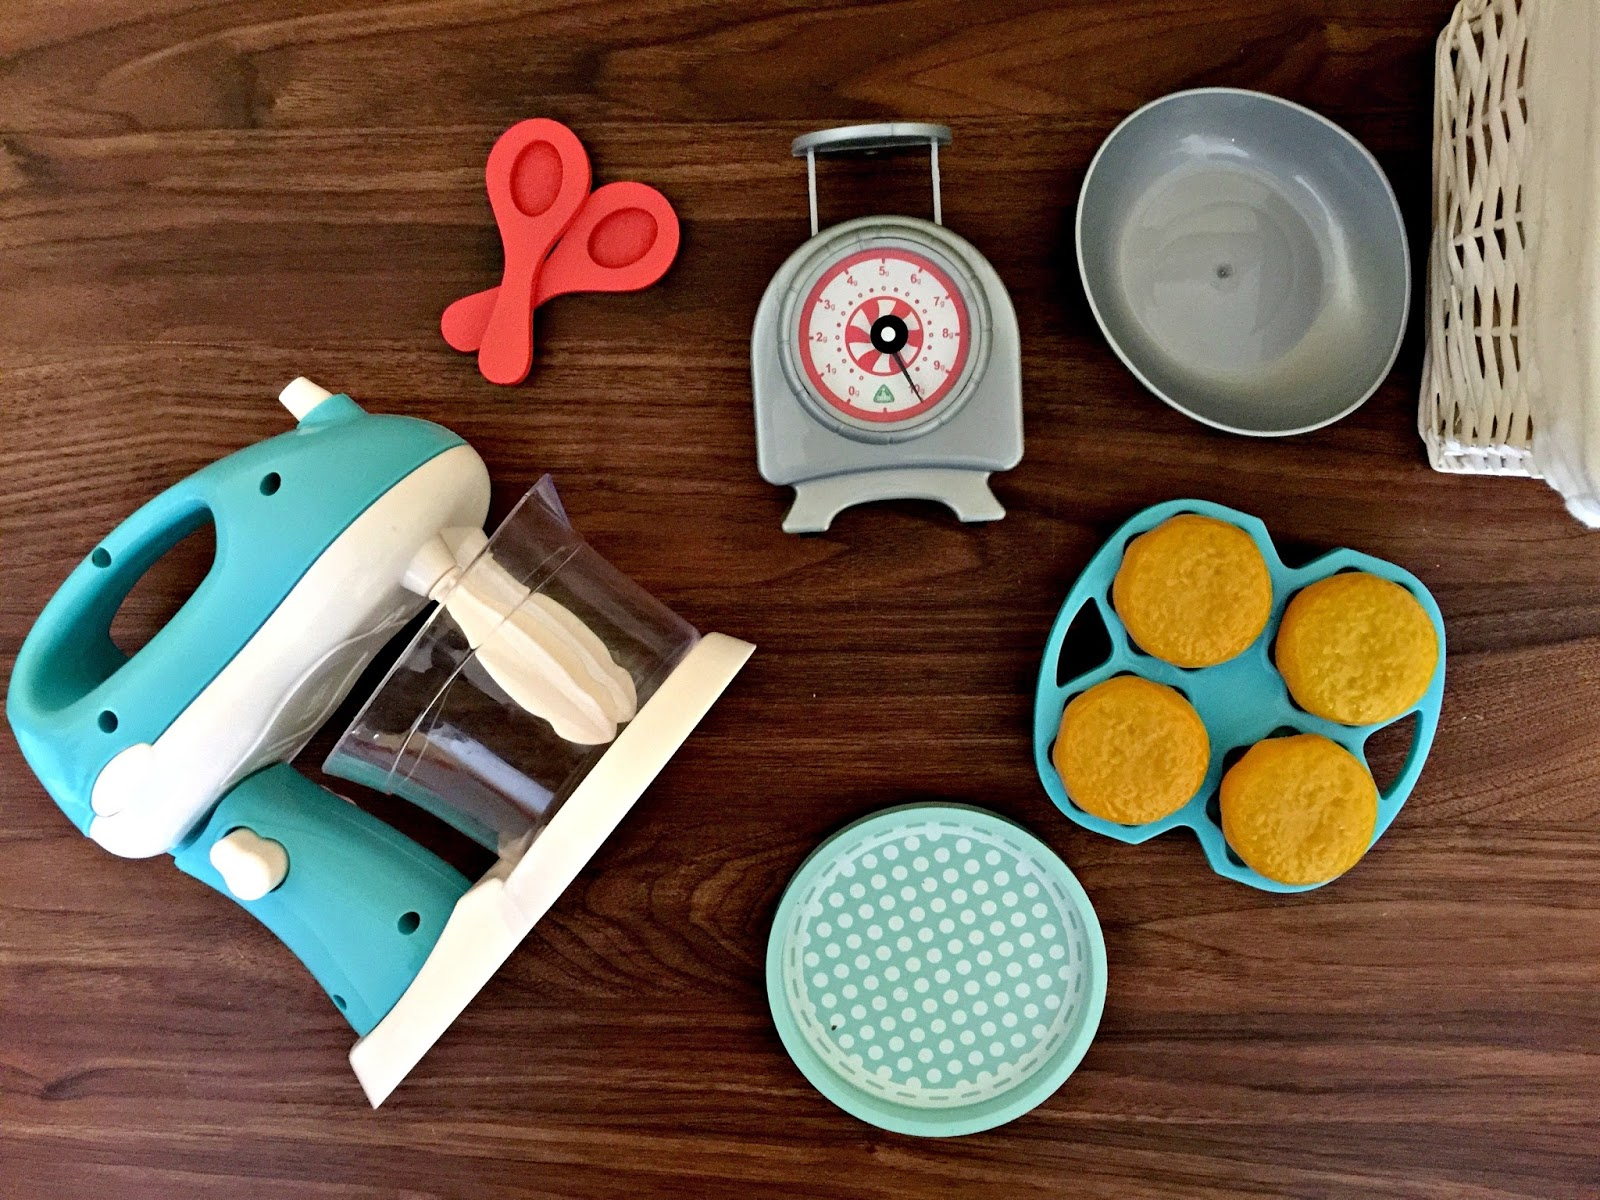 8 Tips For Baking With Toddlers